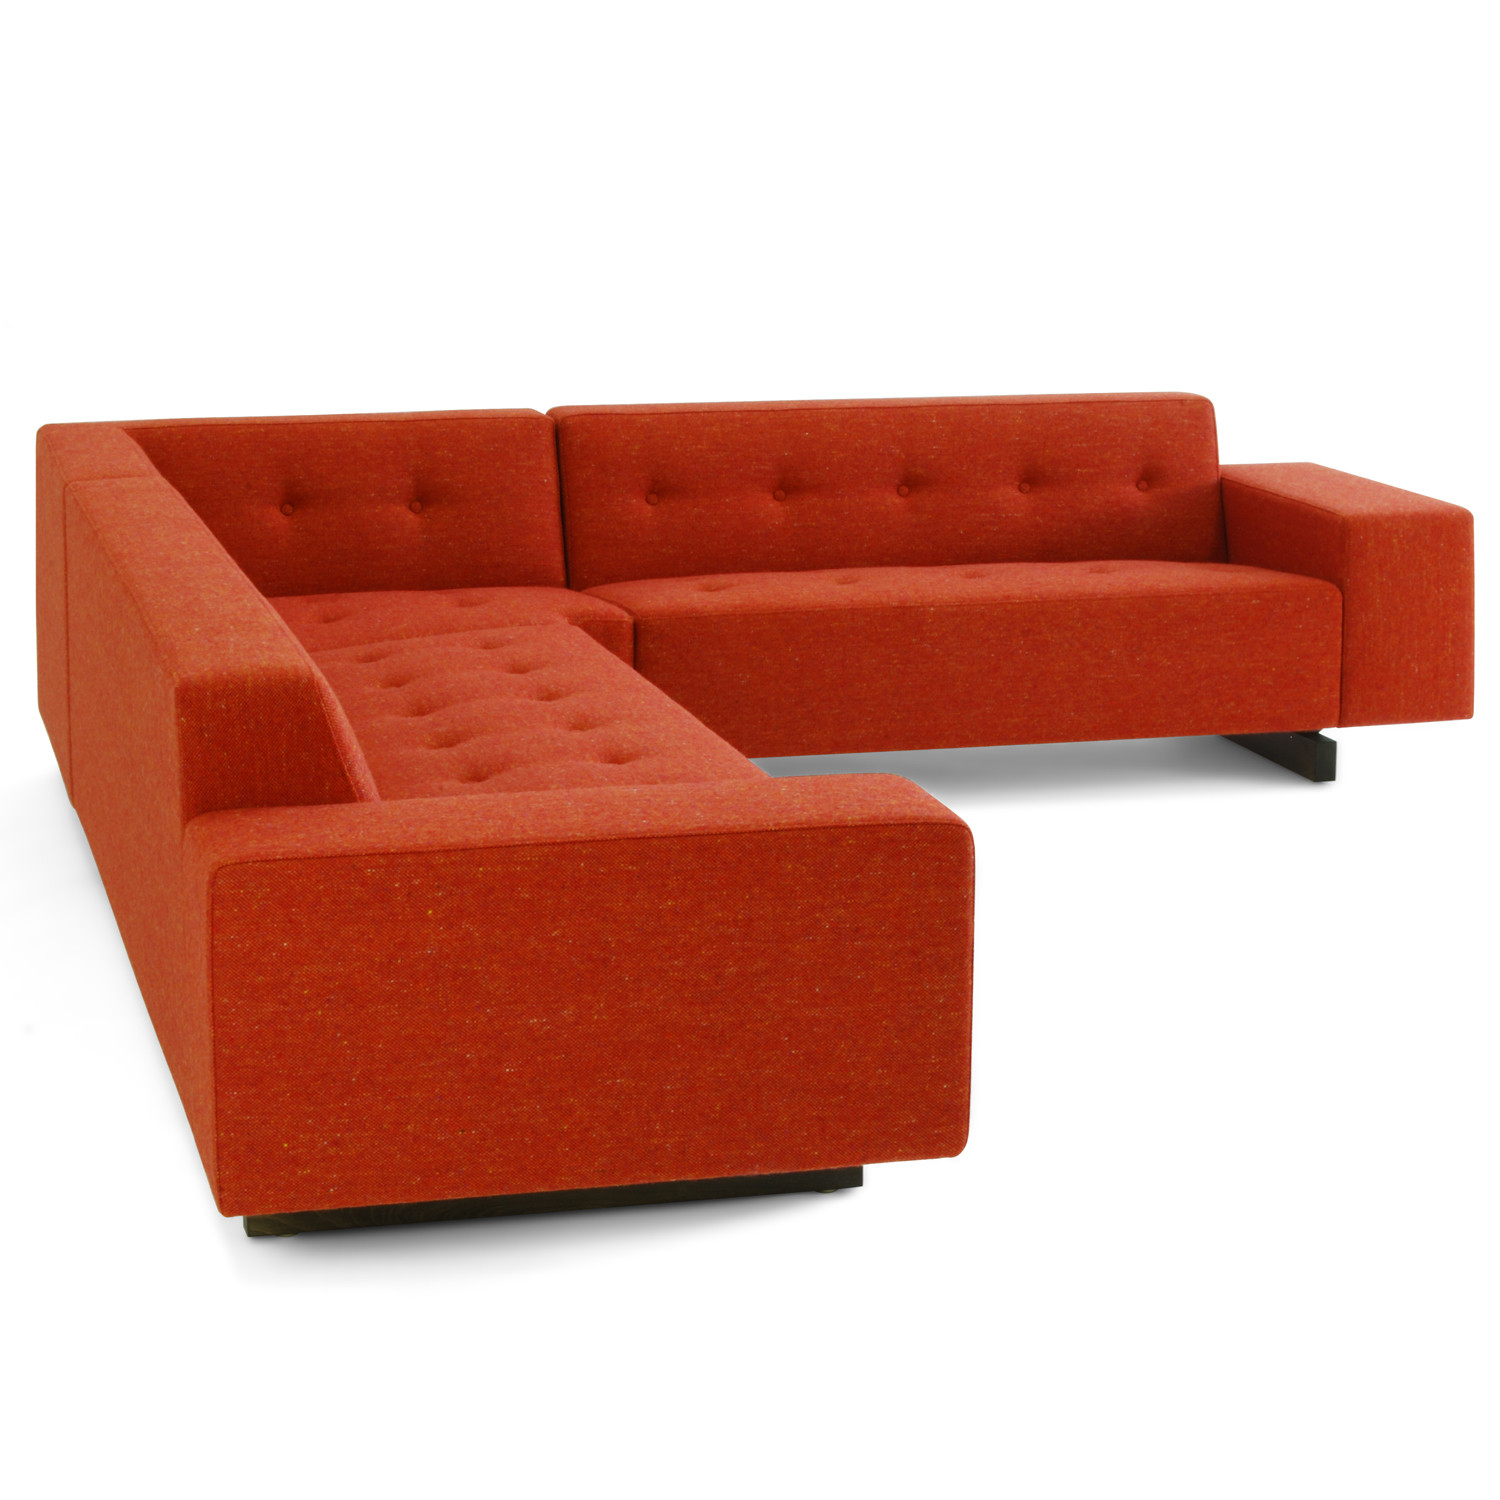 HM46 Modular Soft Seating